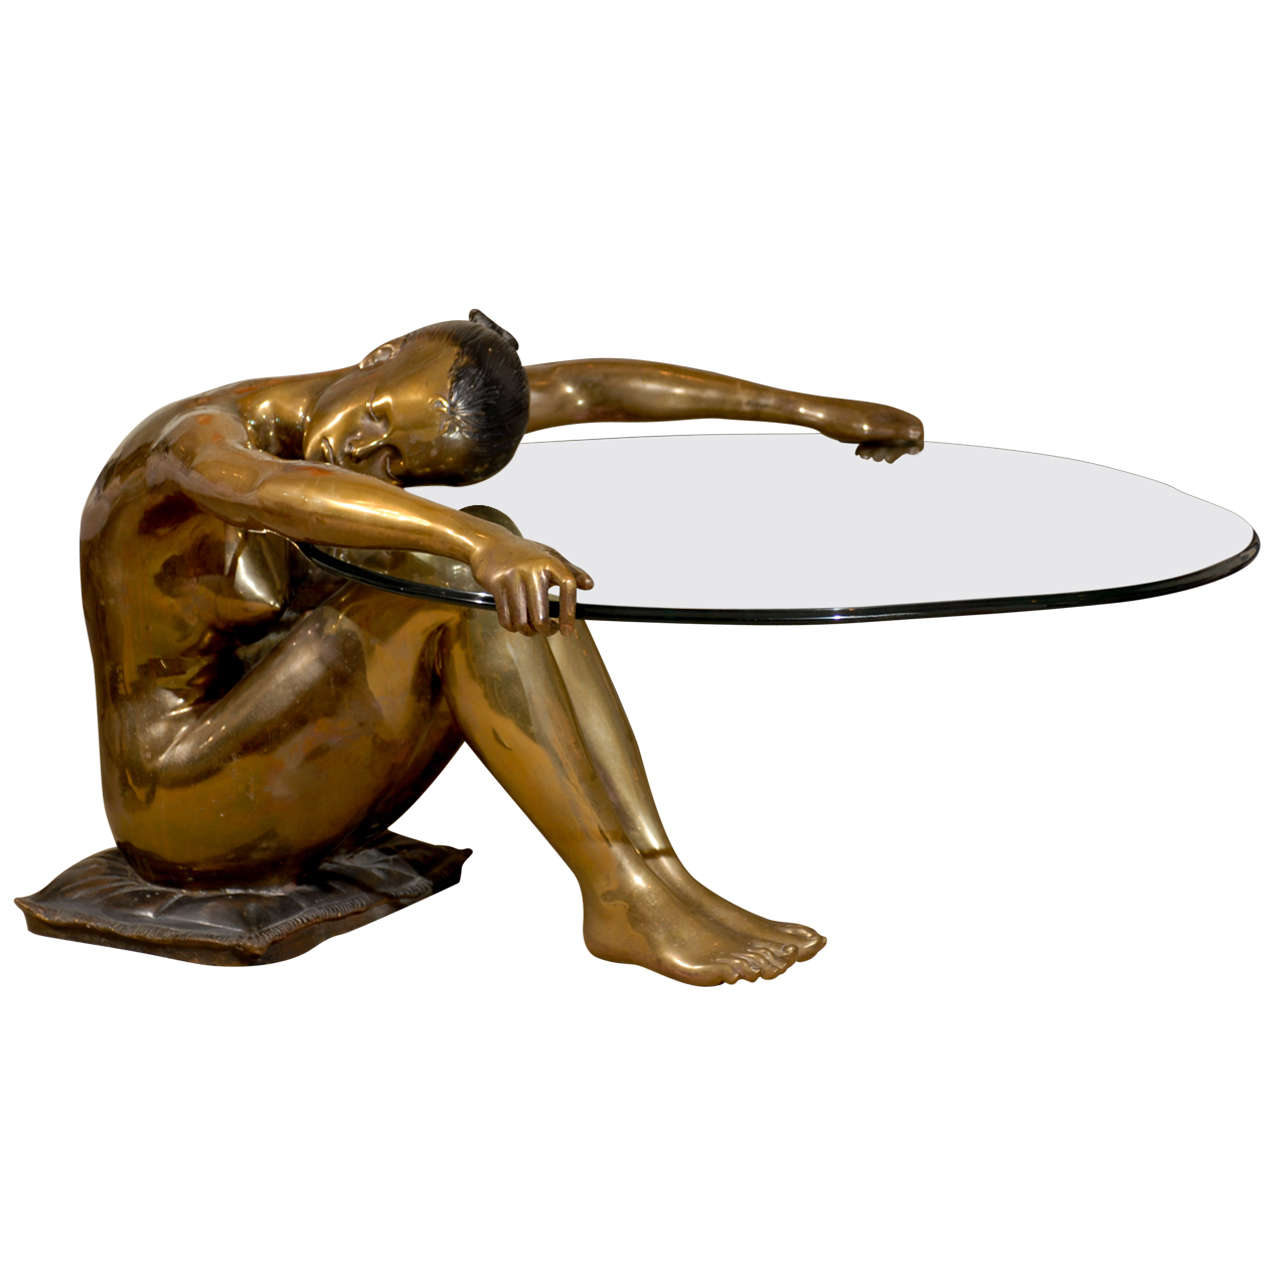 Marvelous Exceptional Vintage Female Nude Sculpture Coffee Table 1